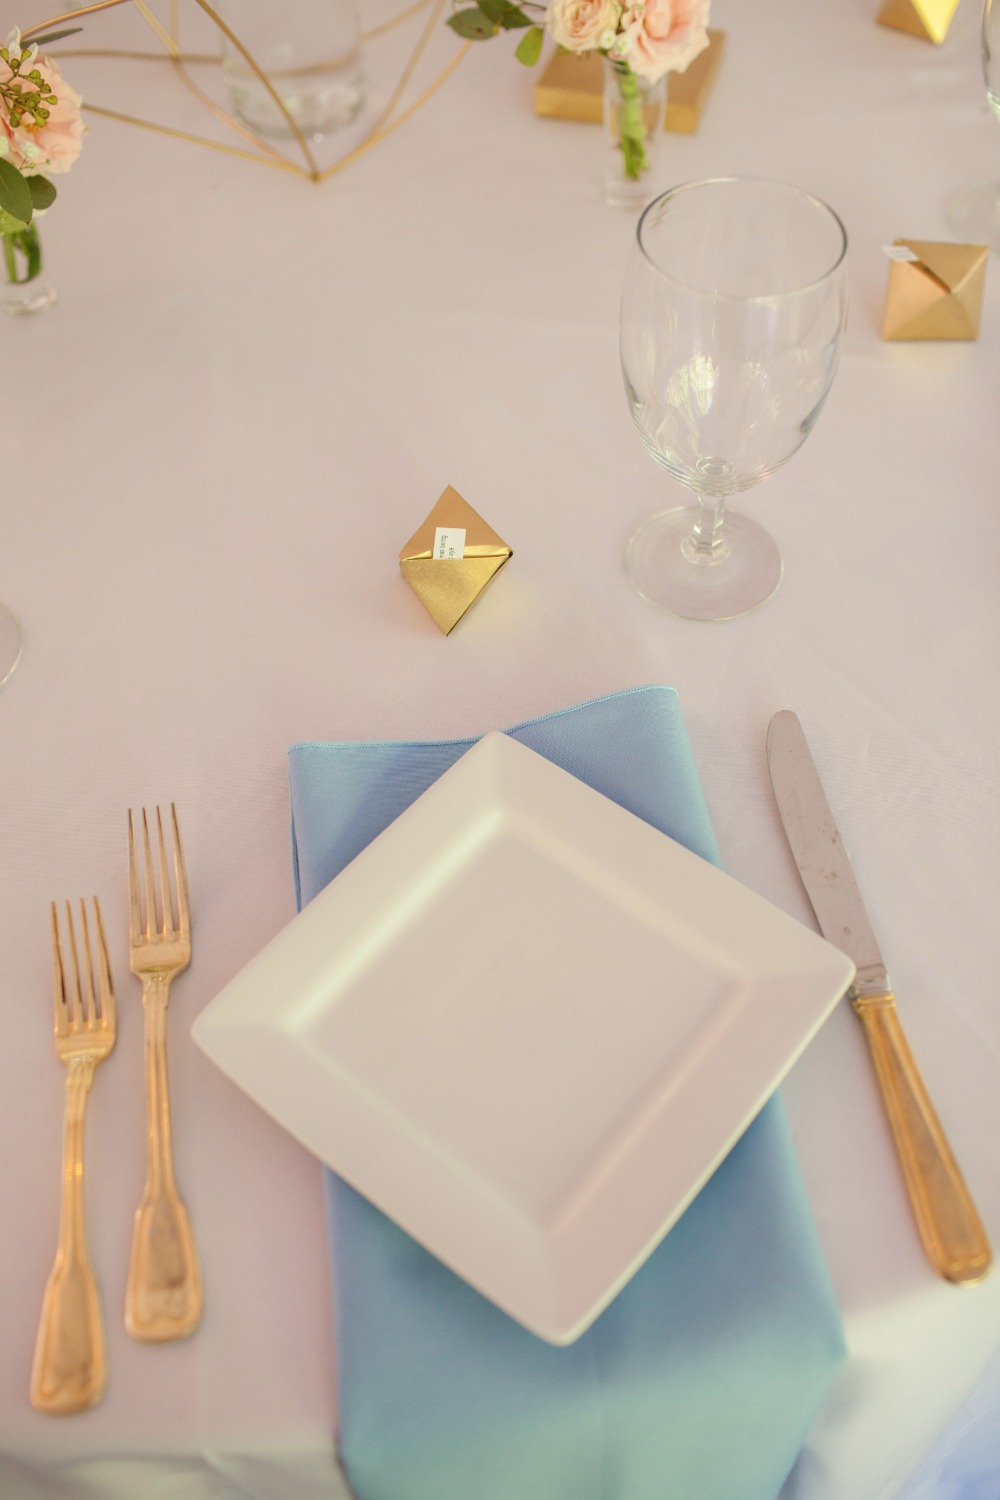 Blue, white and gold table setting ideas